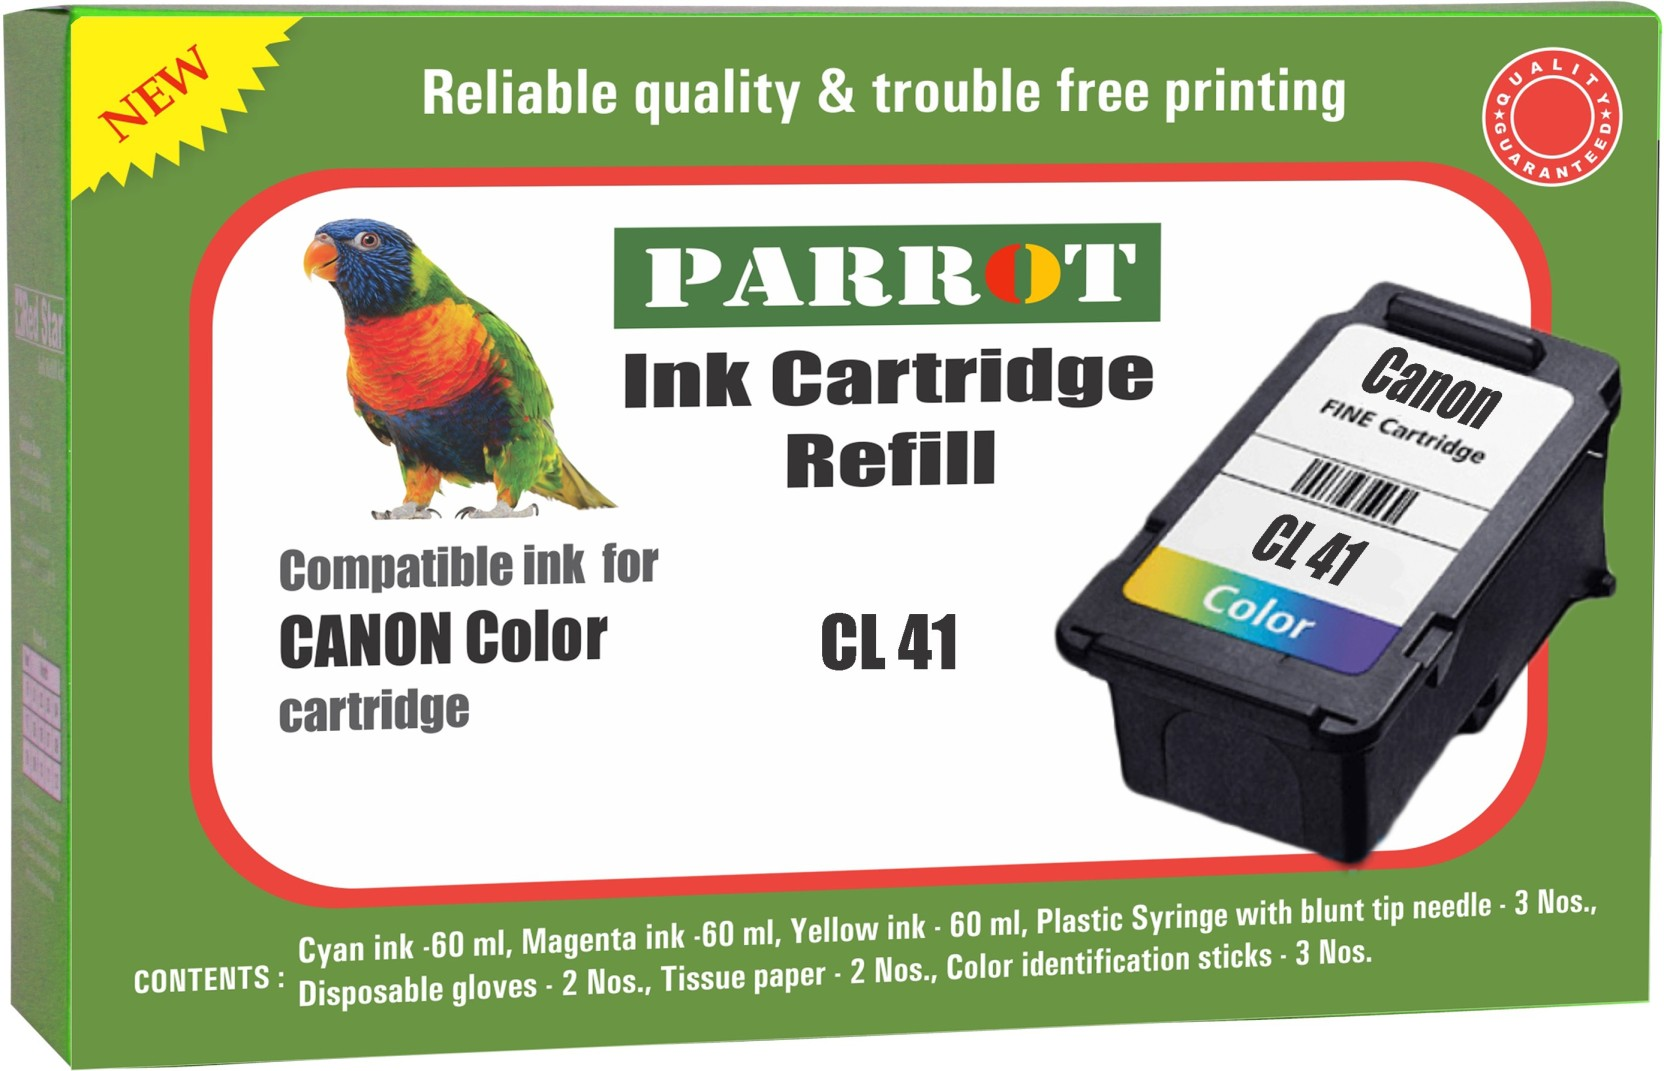 Parrot Ink Cartridge Refill For Canon 41 Multi Color Cl Colour Original Add To Cart